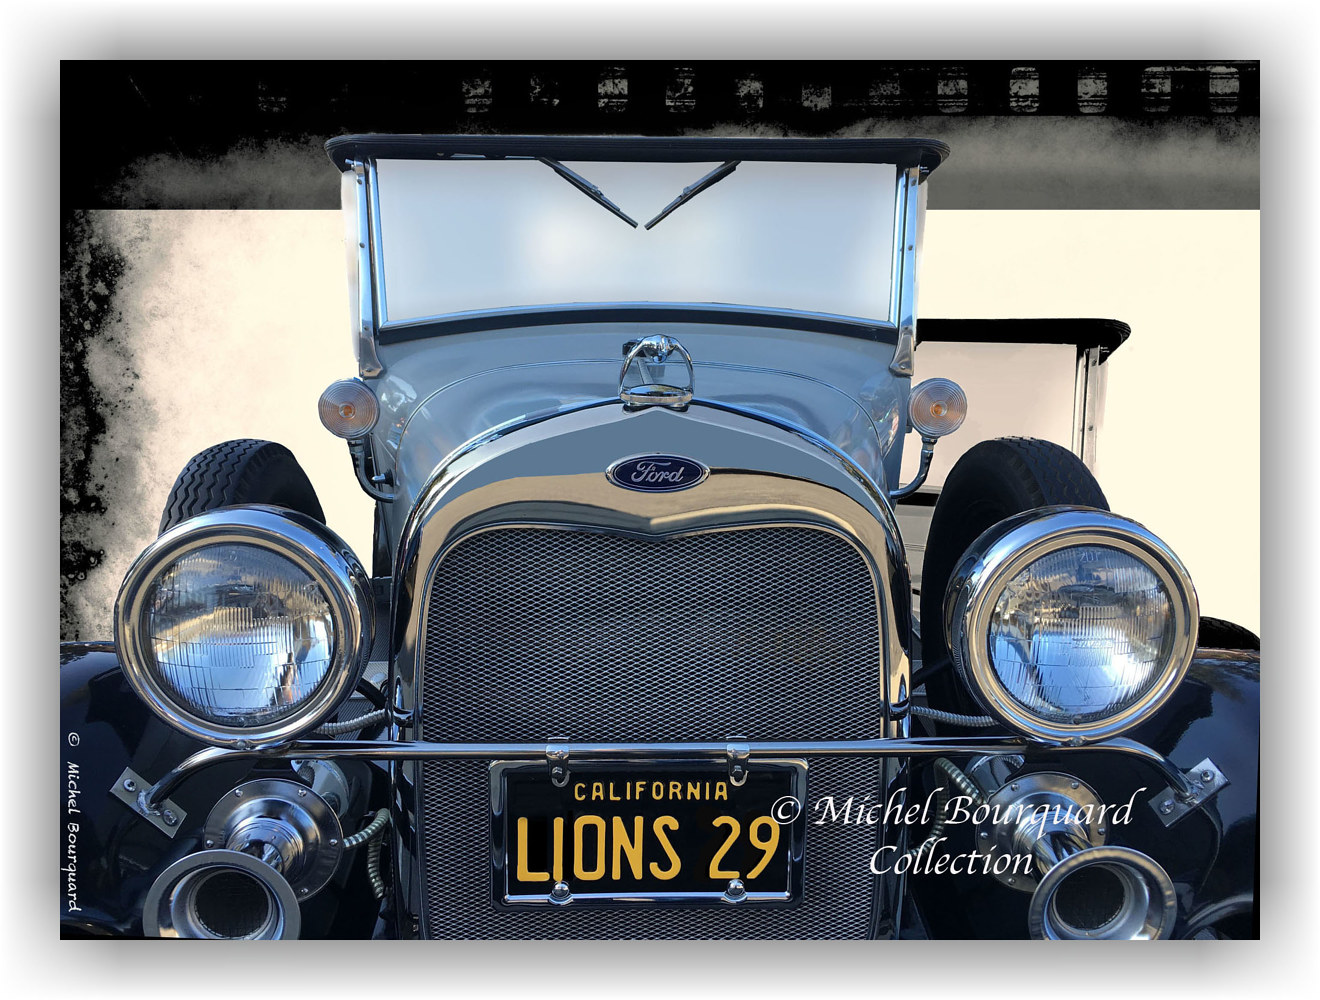 096-Ford T Lions 29 by Michel Bourquard